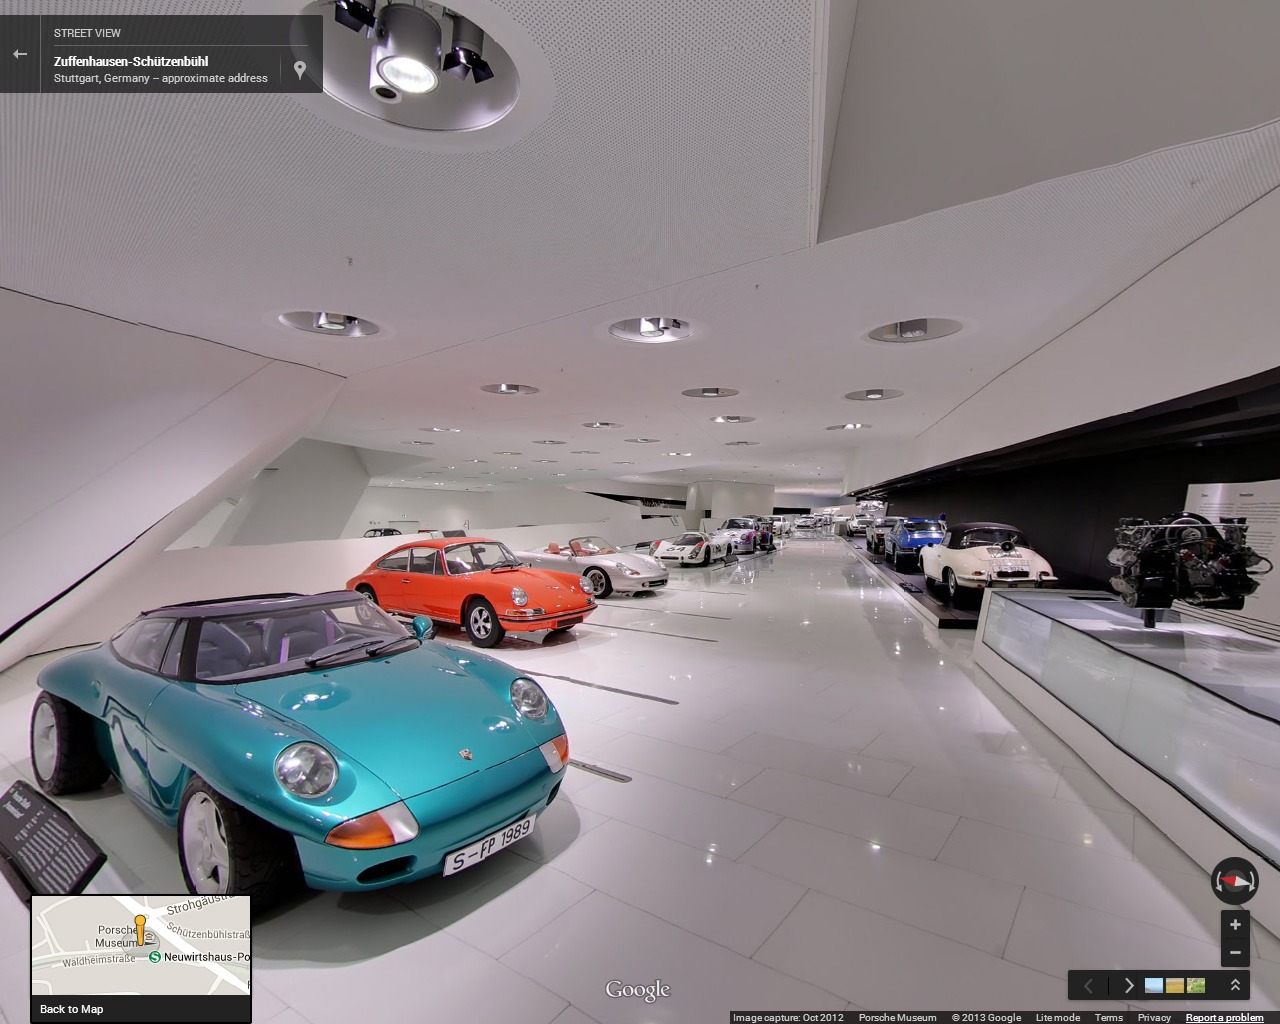 Google Street View of the Porsche Museum in Germany.